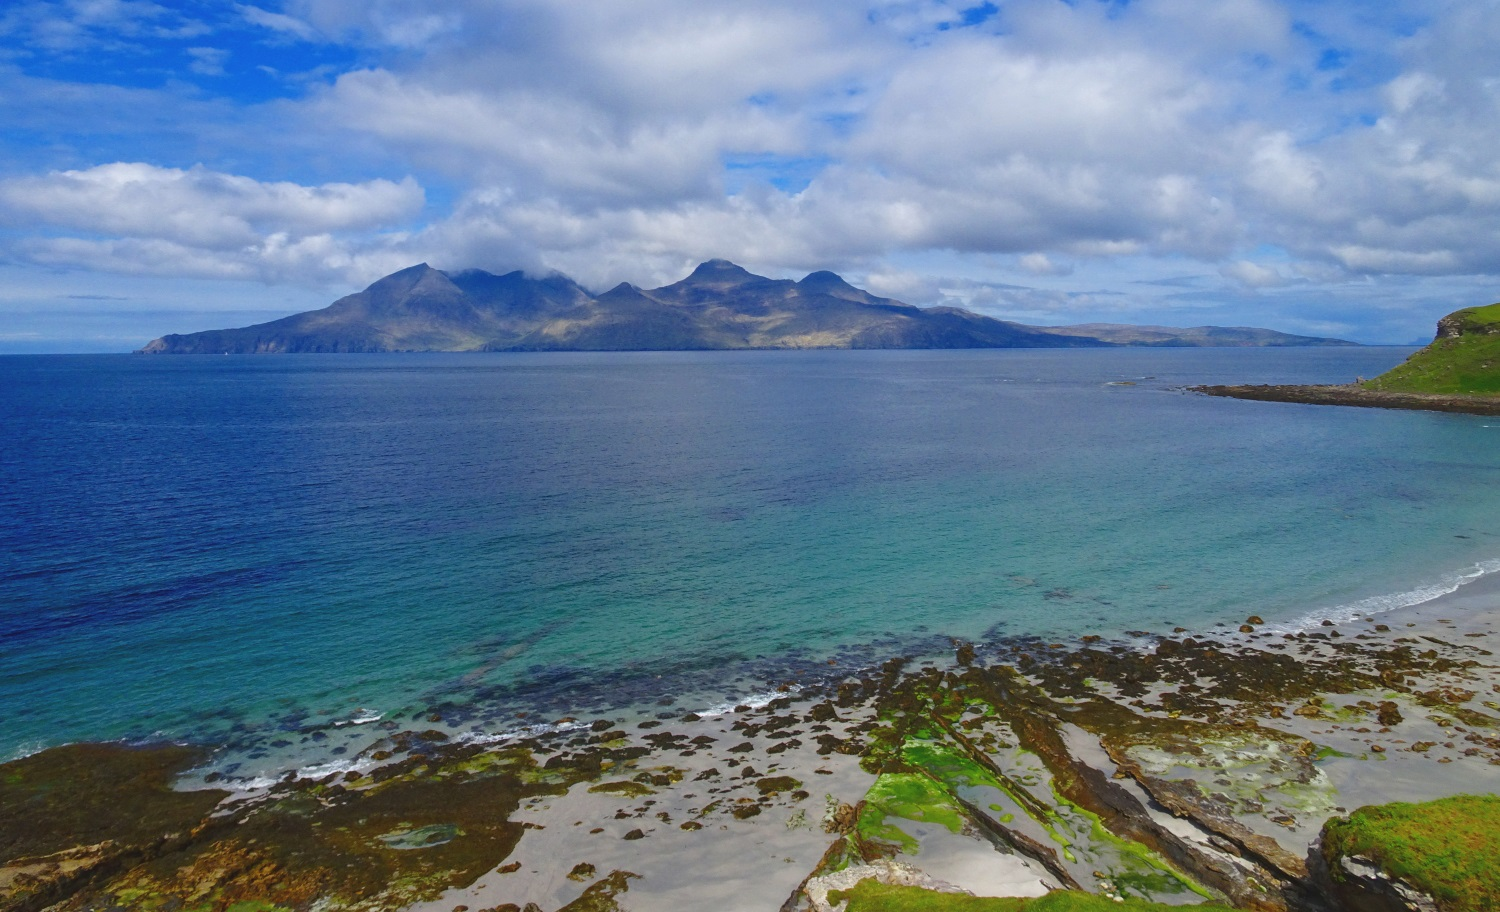 Bay of Laig on the Isle of Eigg with views towards the Isle of Rum